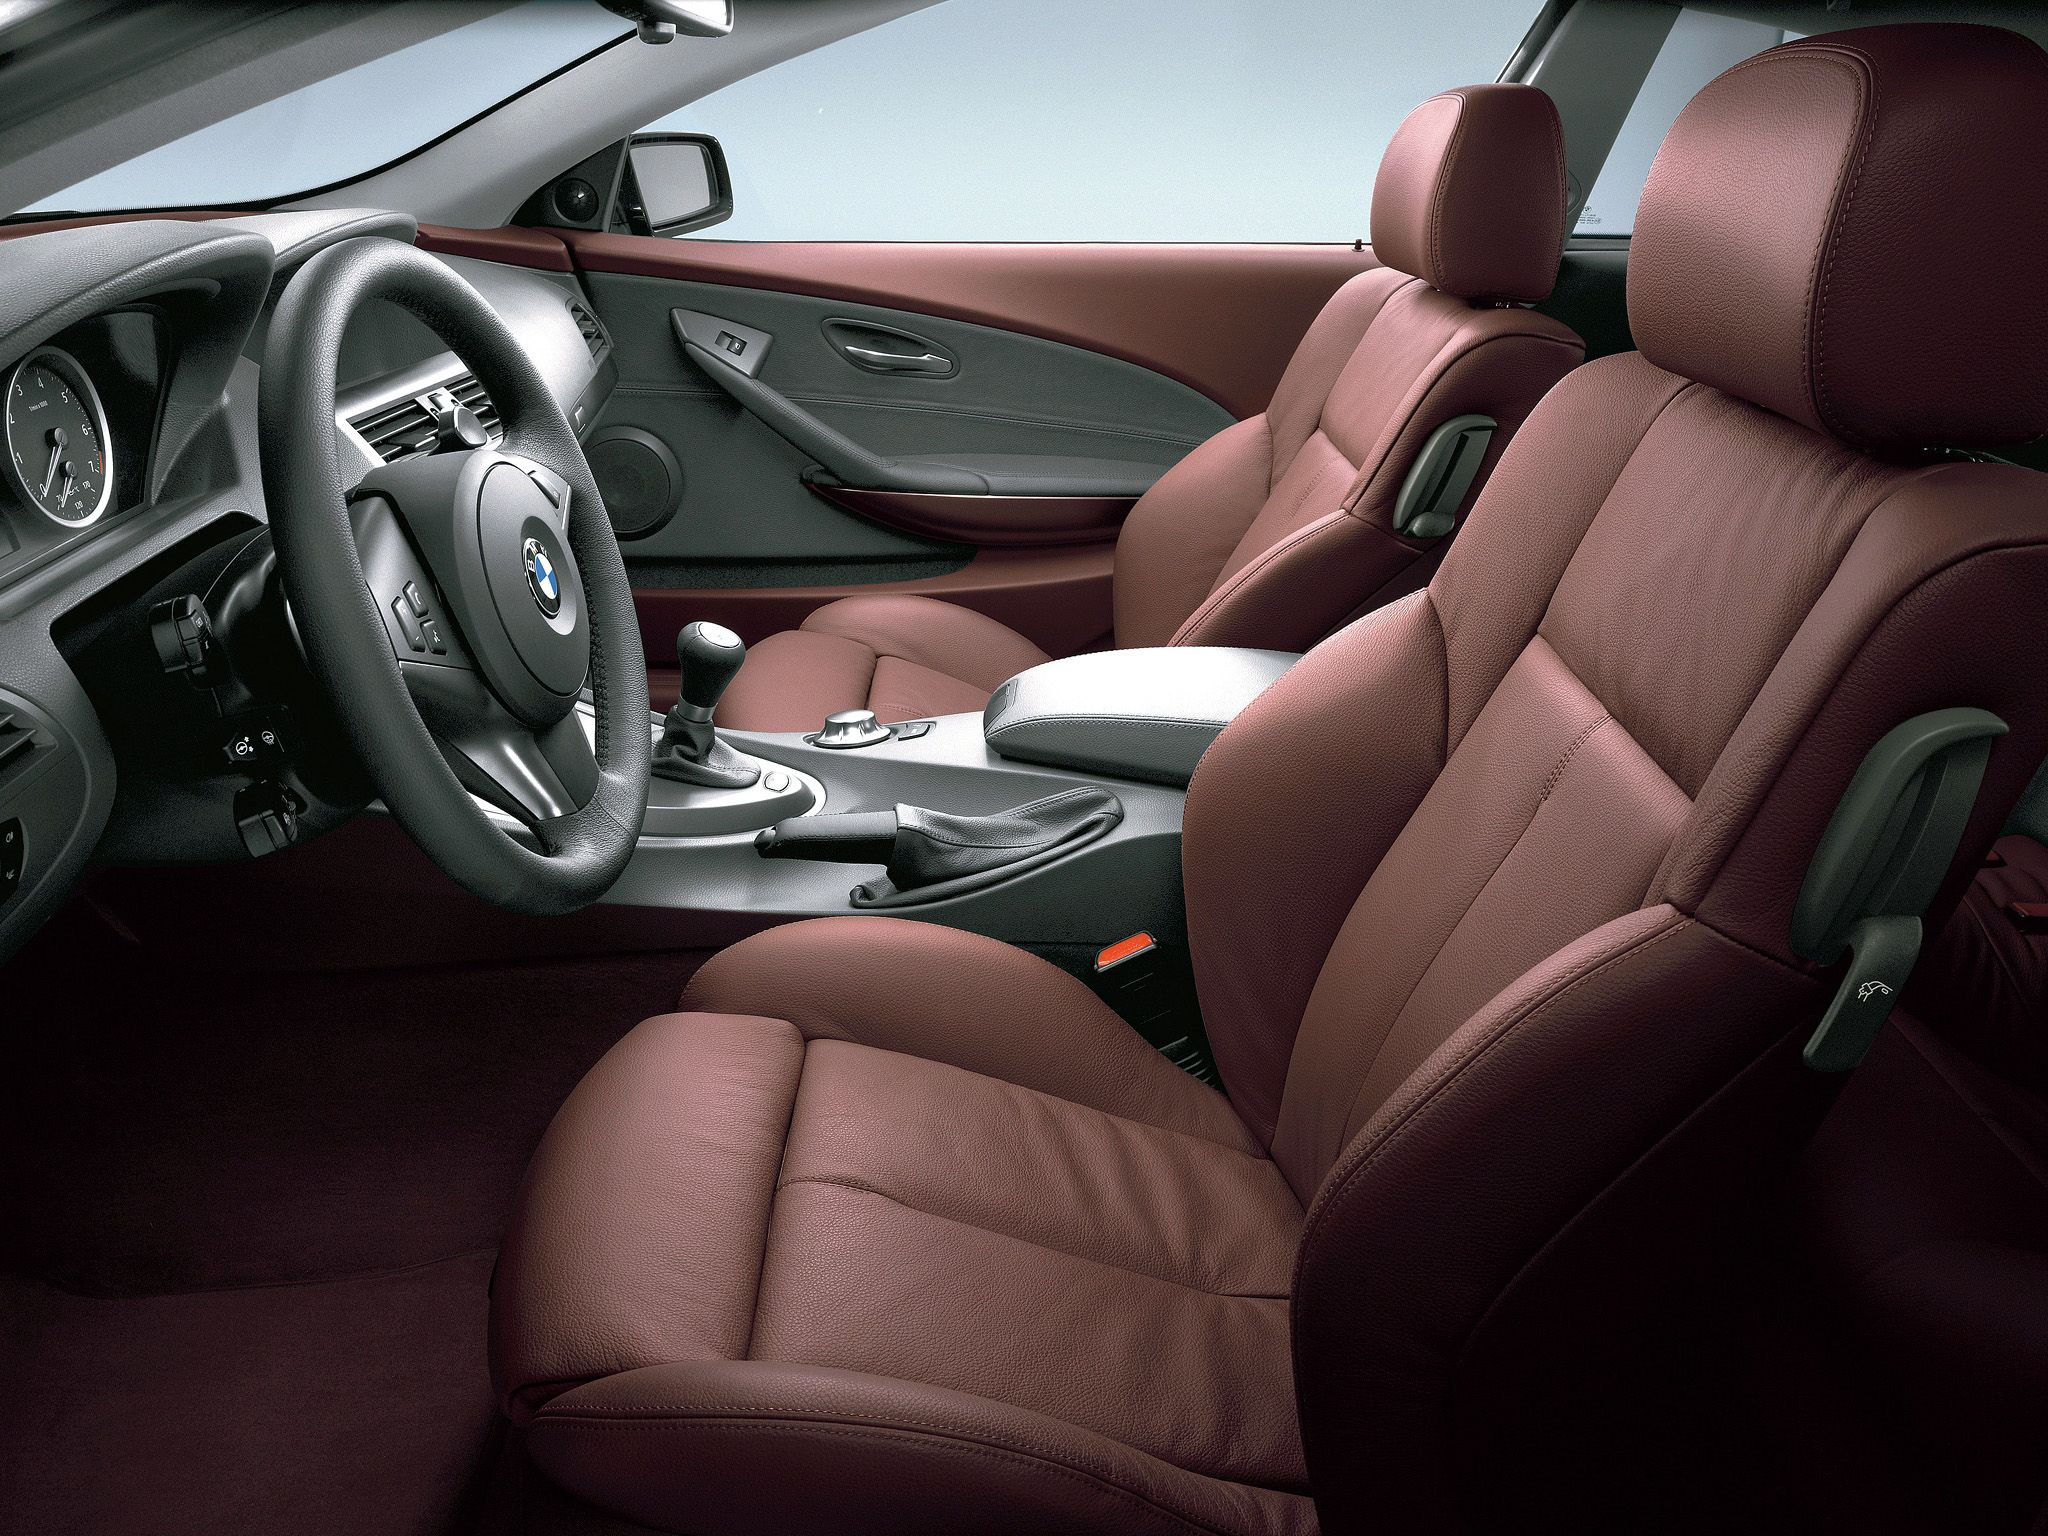 E63 bmw 6 series interior